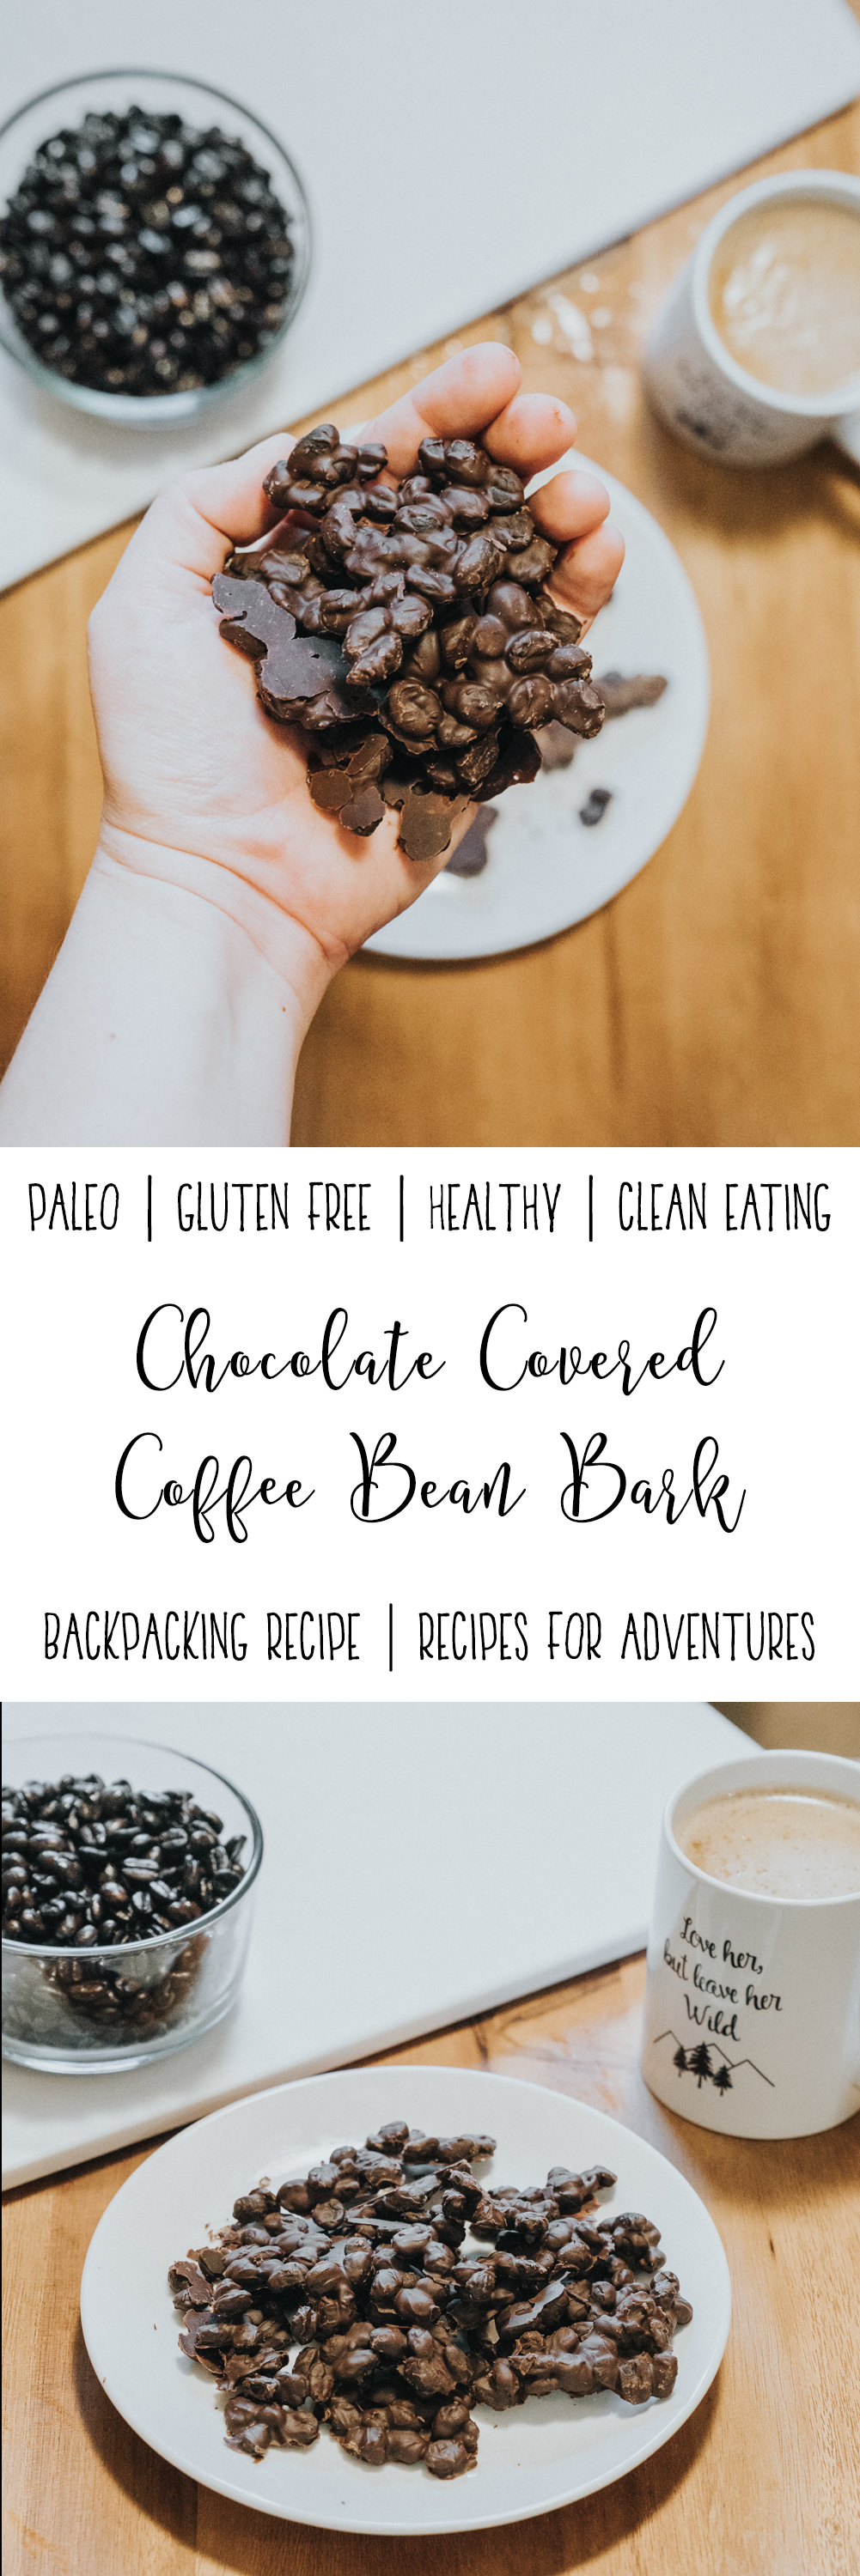 Chocolate Covered Coffee Bean Bark Recipe by Adventuring of a Small Town Girl - Backpacking Recipes - Recipes for the trail - Recipes for adventures by ASTG